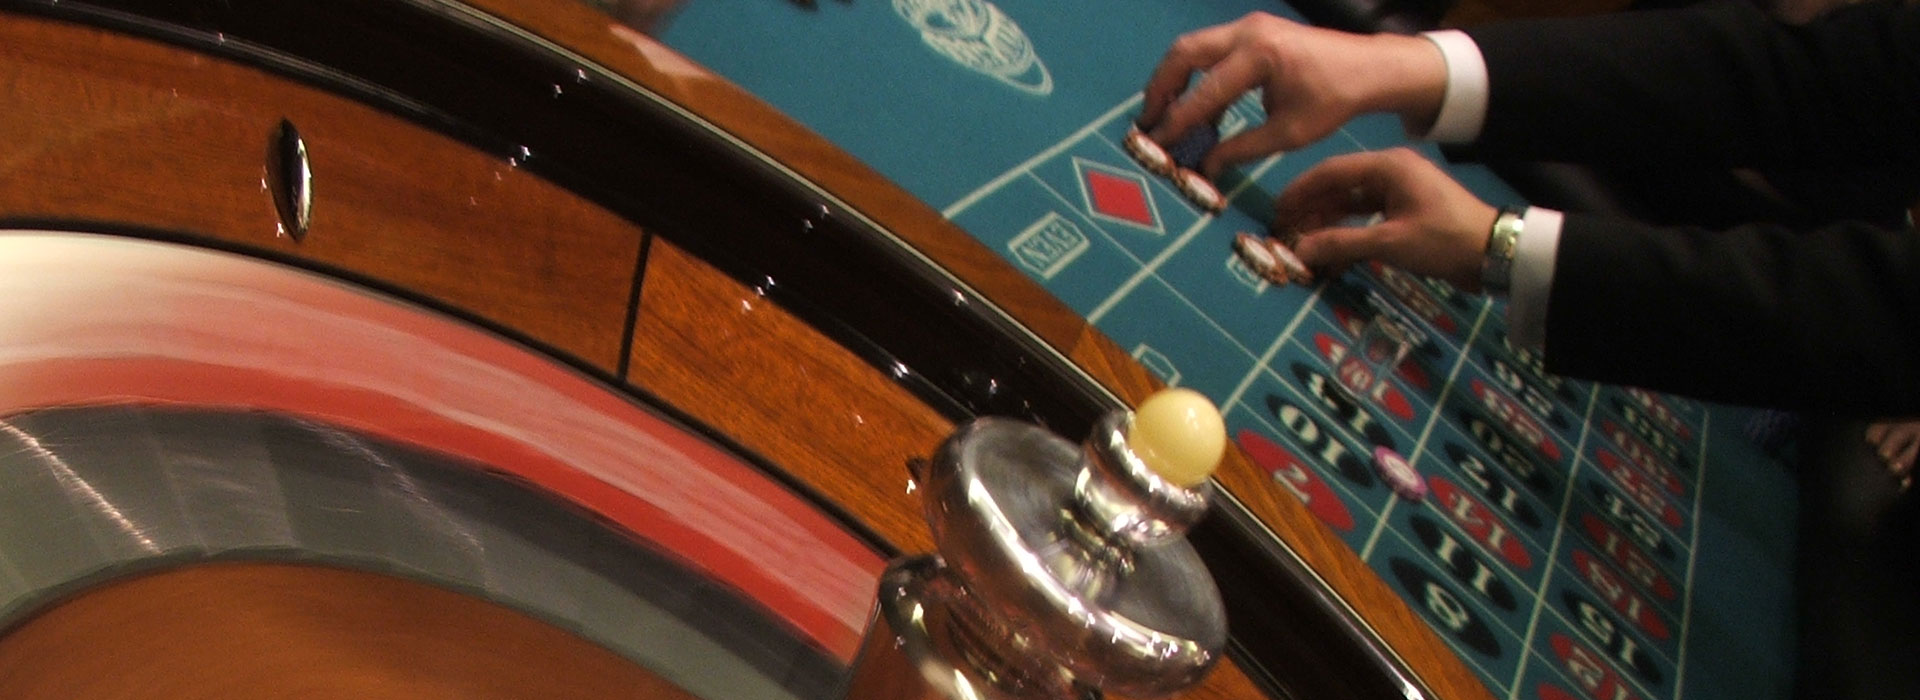 Playing online roulette for a living